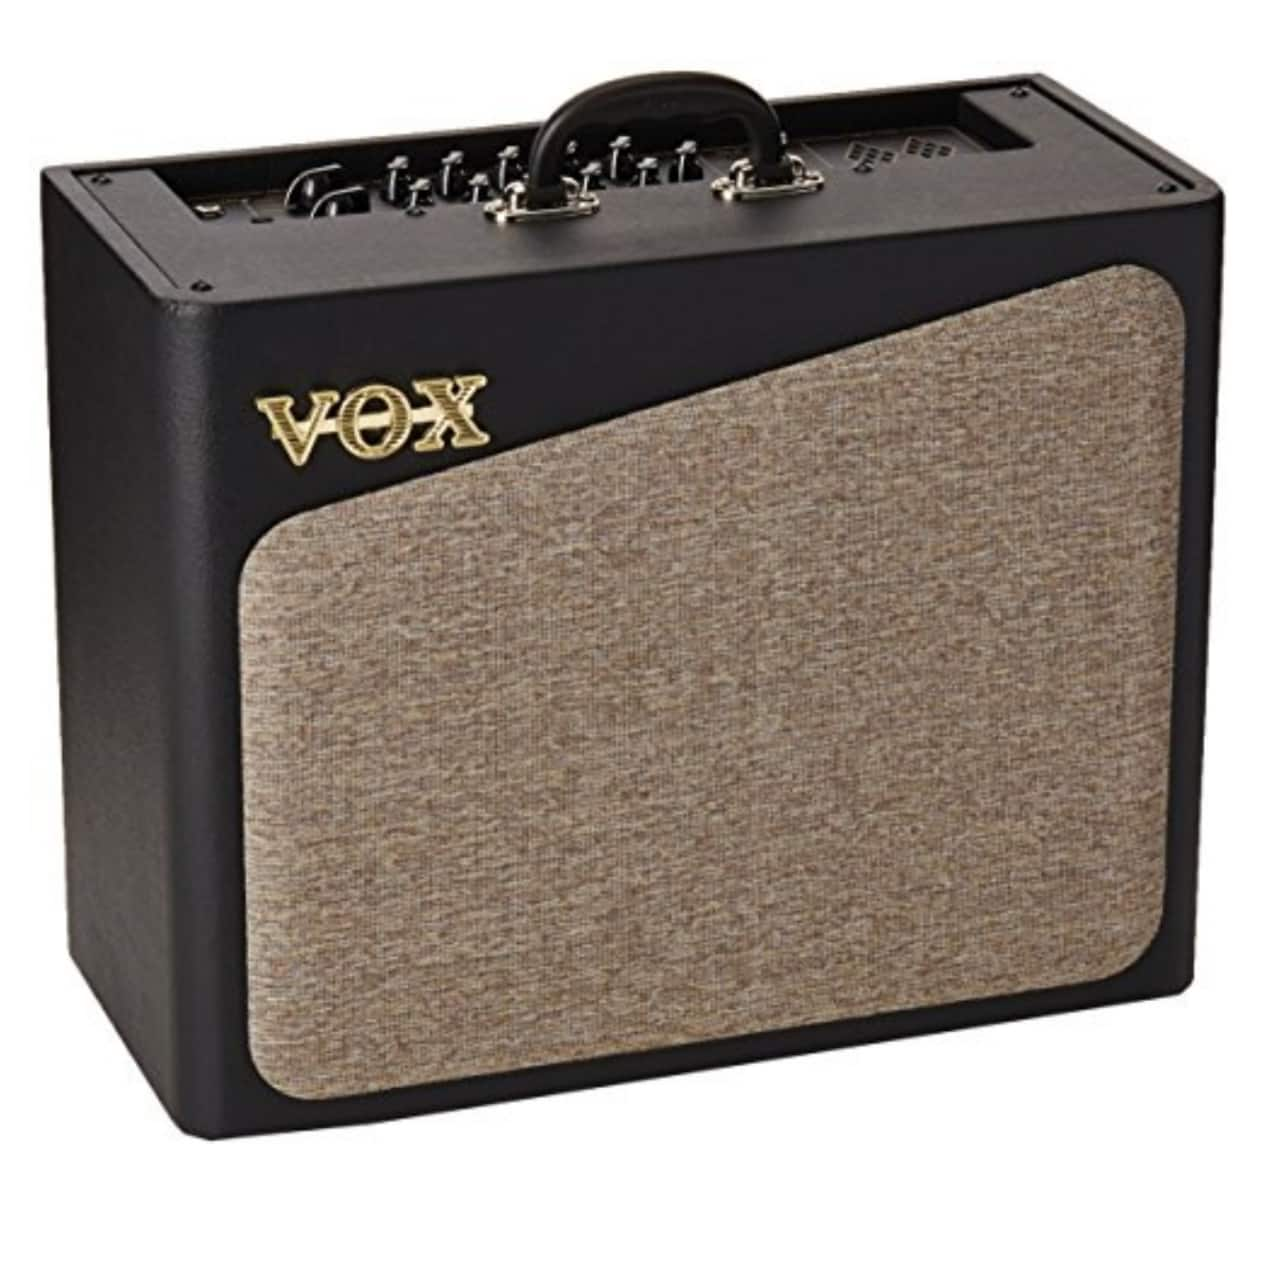 vox av30 tube combo amplifier electric guitar modeling amp reverb. Black Bedroom Furniture Sets. Home Design Ideas